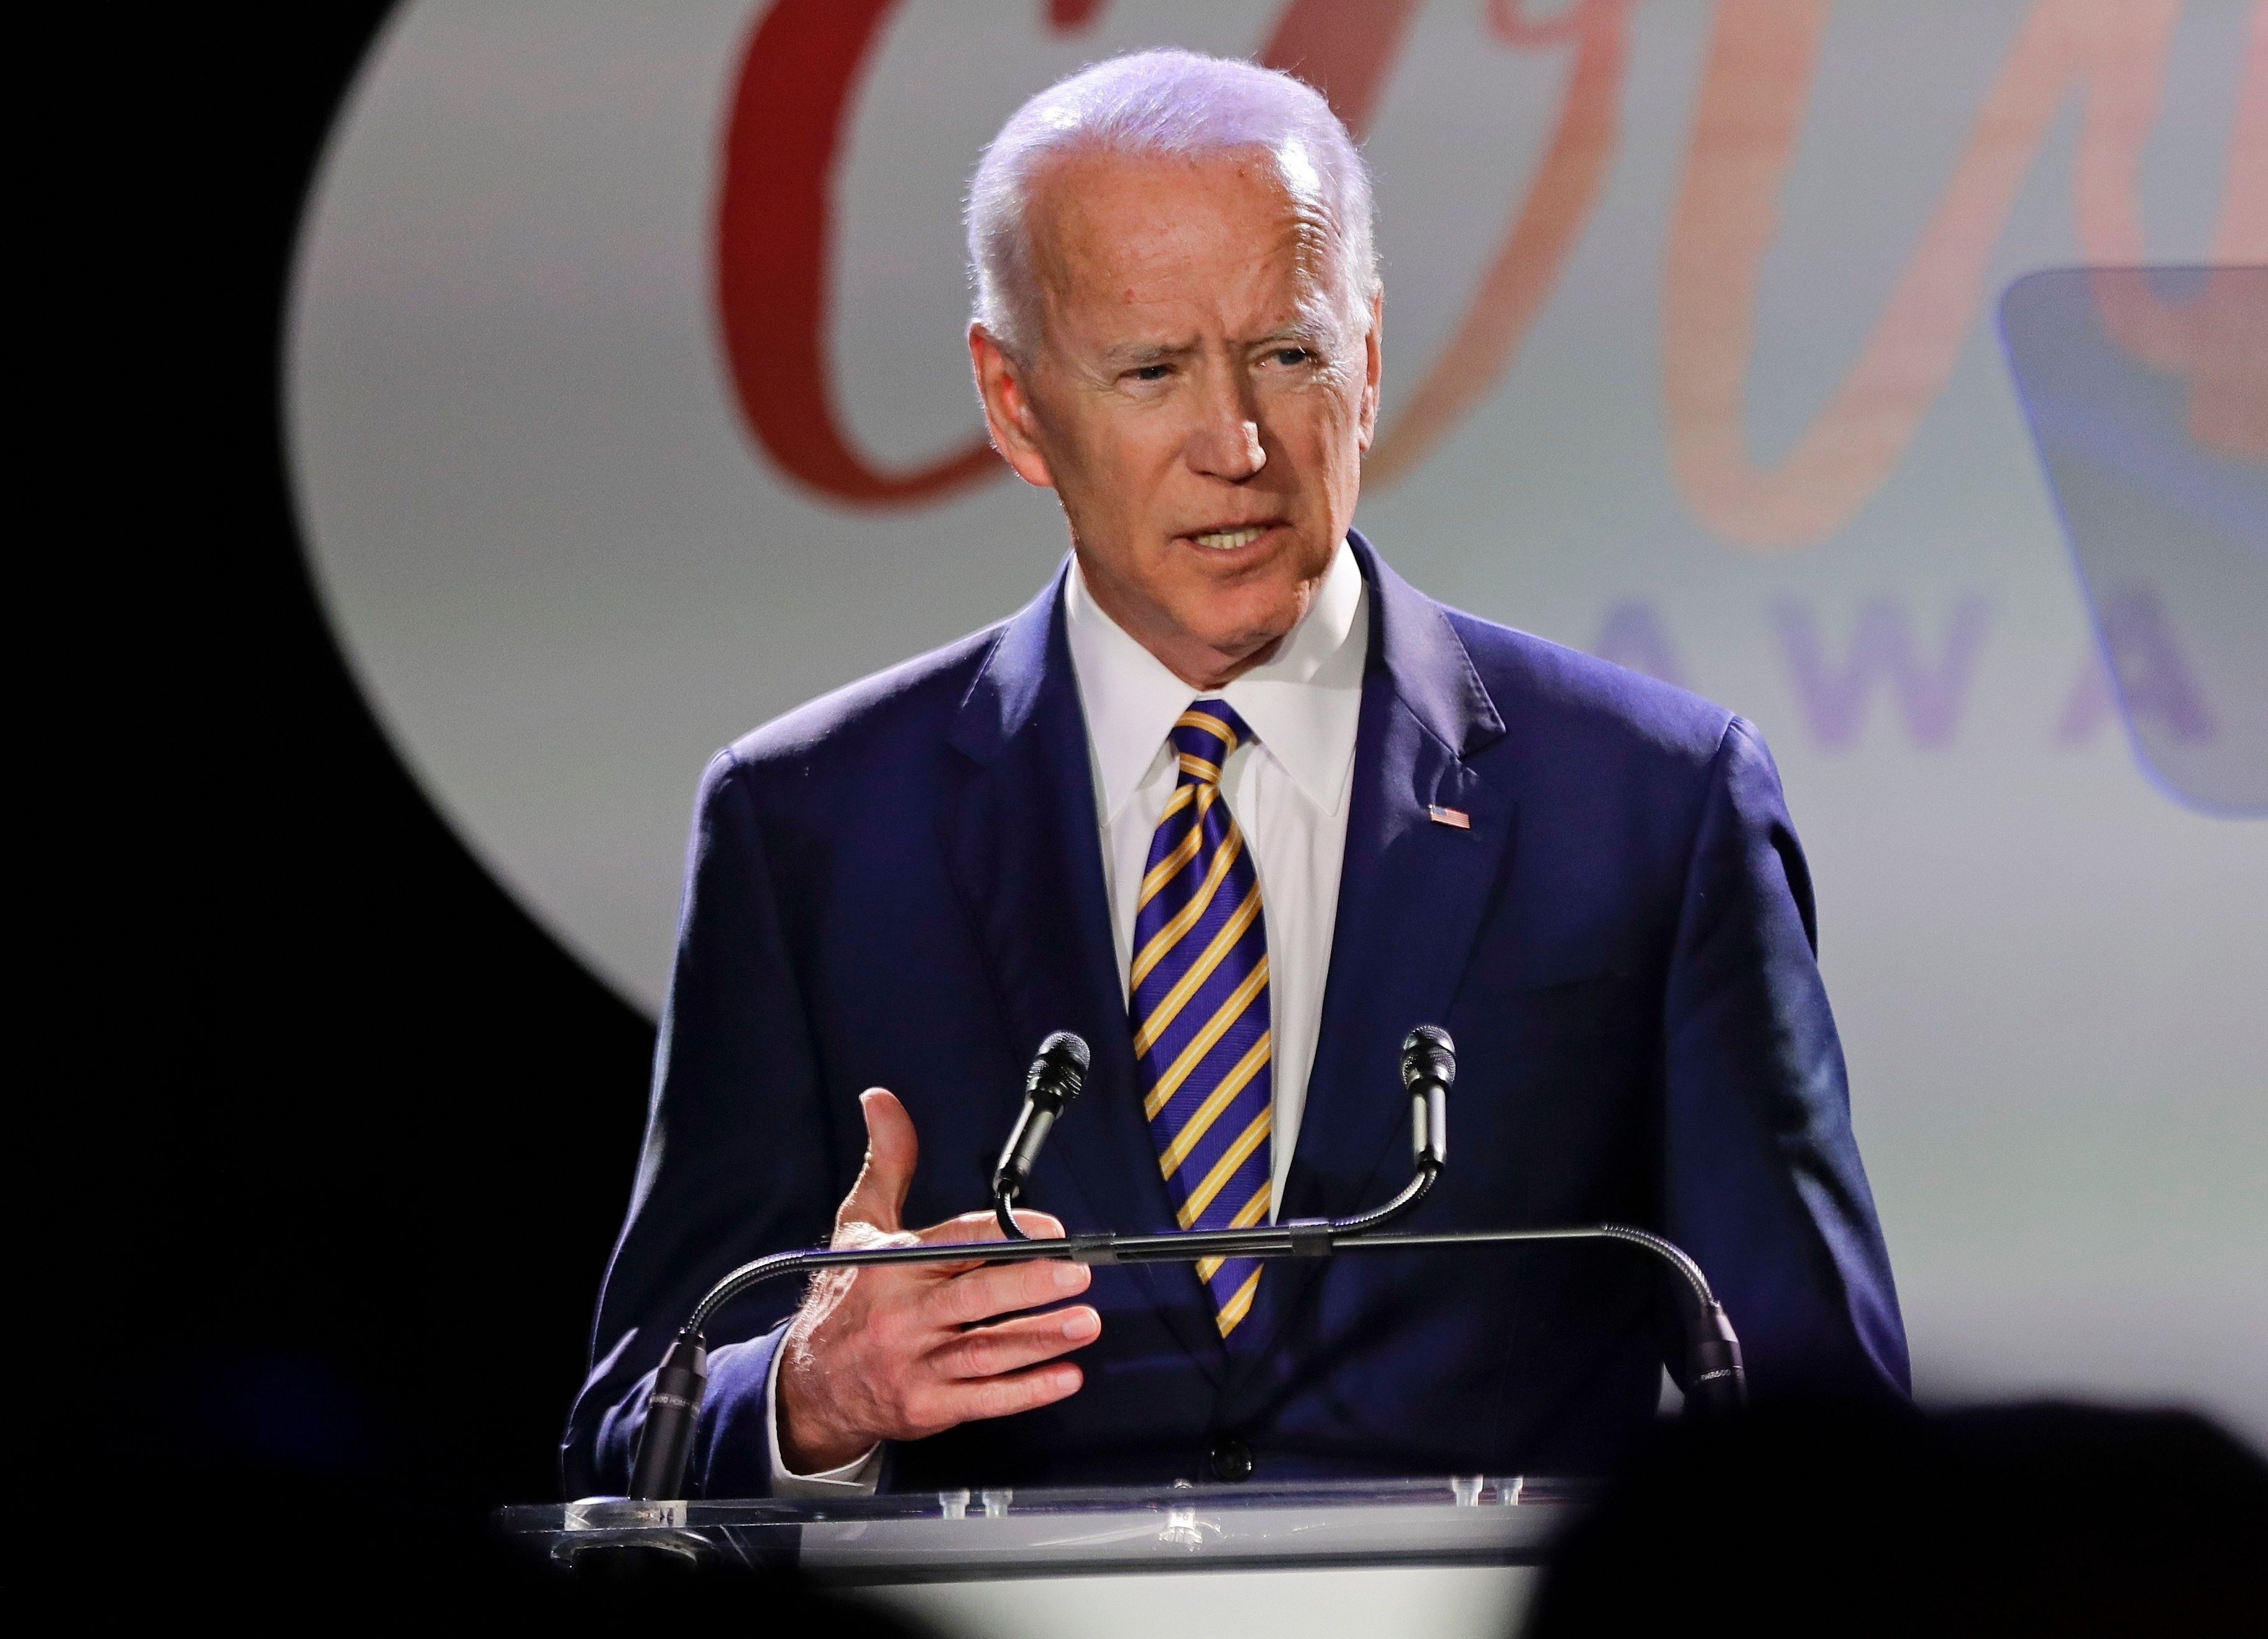 Former Vice President Joe Biden has been facing heat for his previous positions as he considers a run for president.